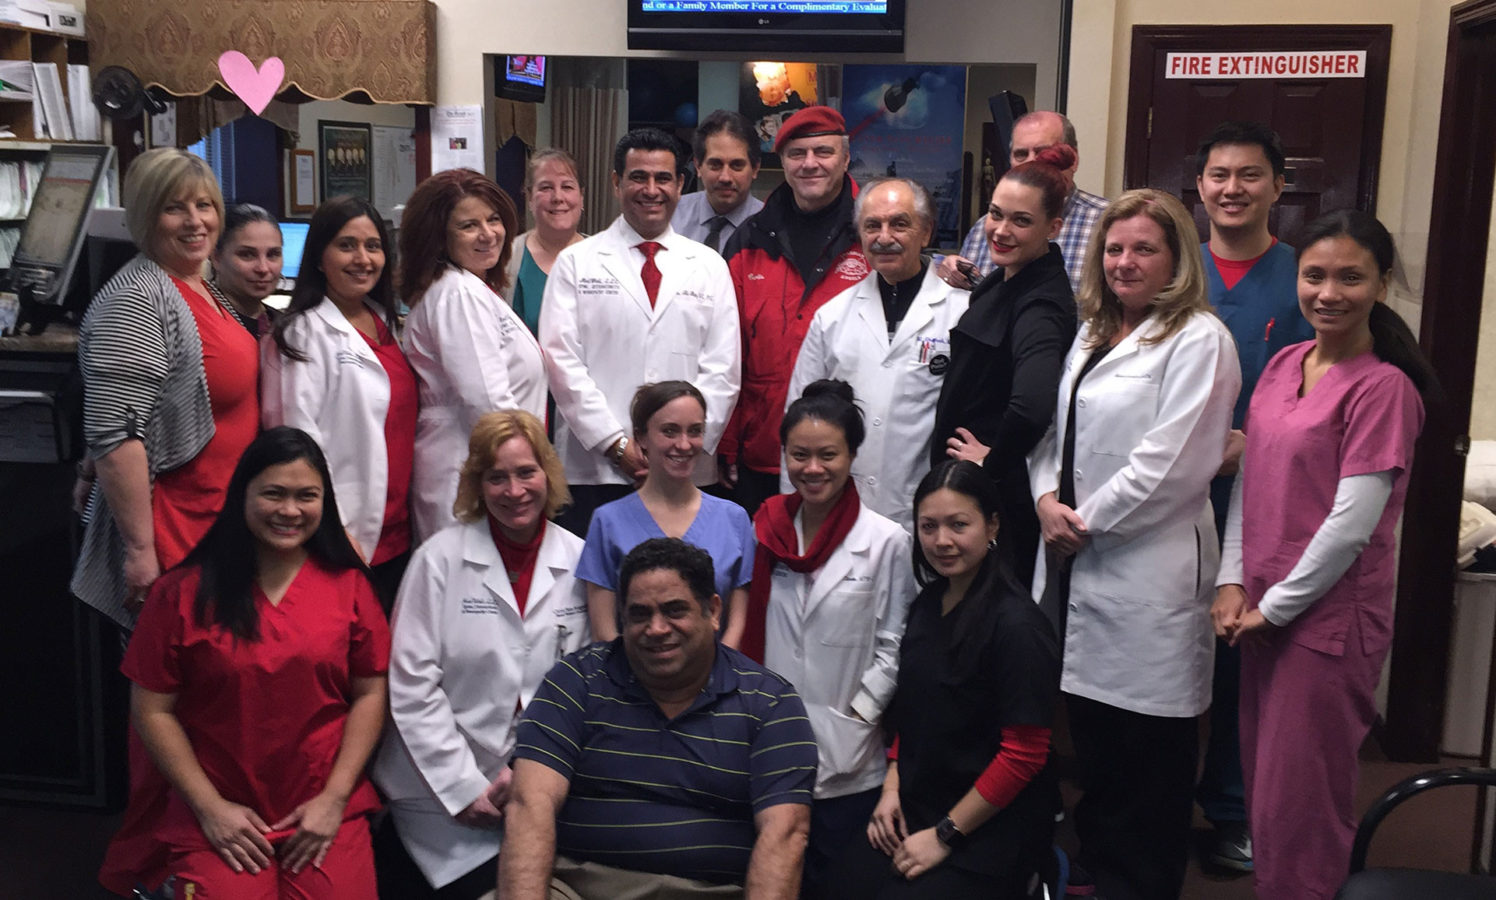 The MedWell Staff and Curtis Sliwa, CEO and founder of Guardian Angels